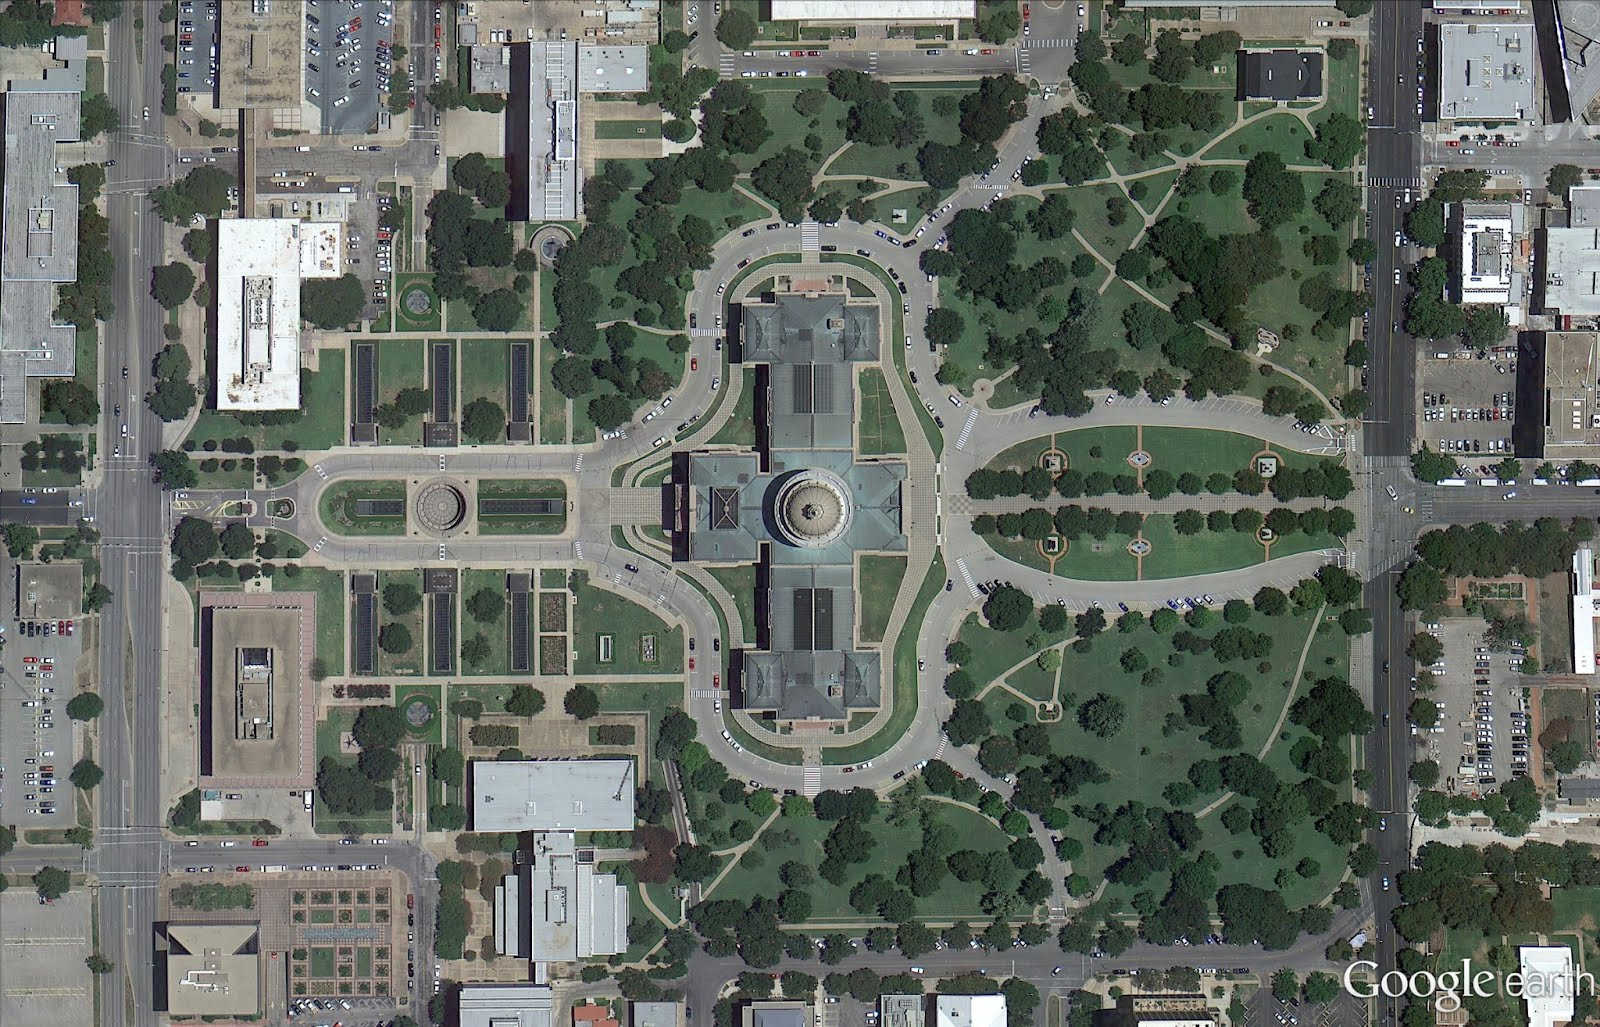 united states capitol wallpapers - Image Gallery Architect of the Capitol United States Capitol